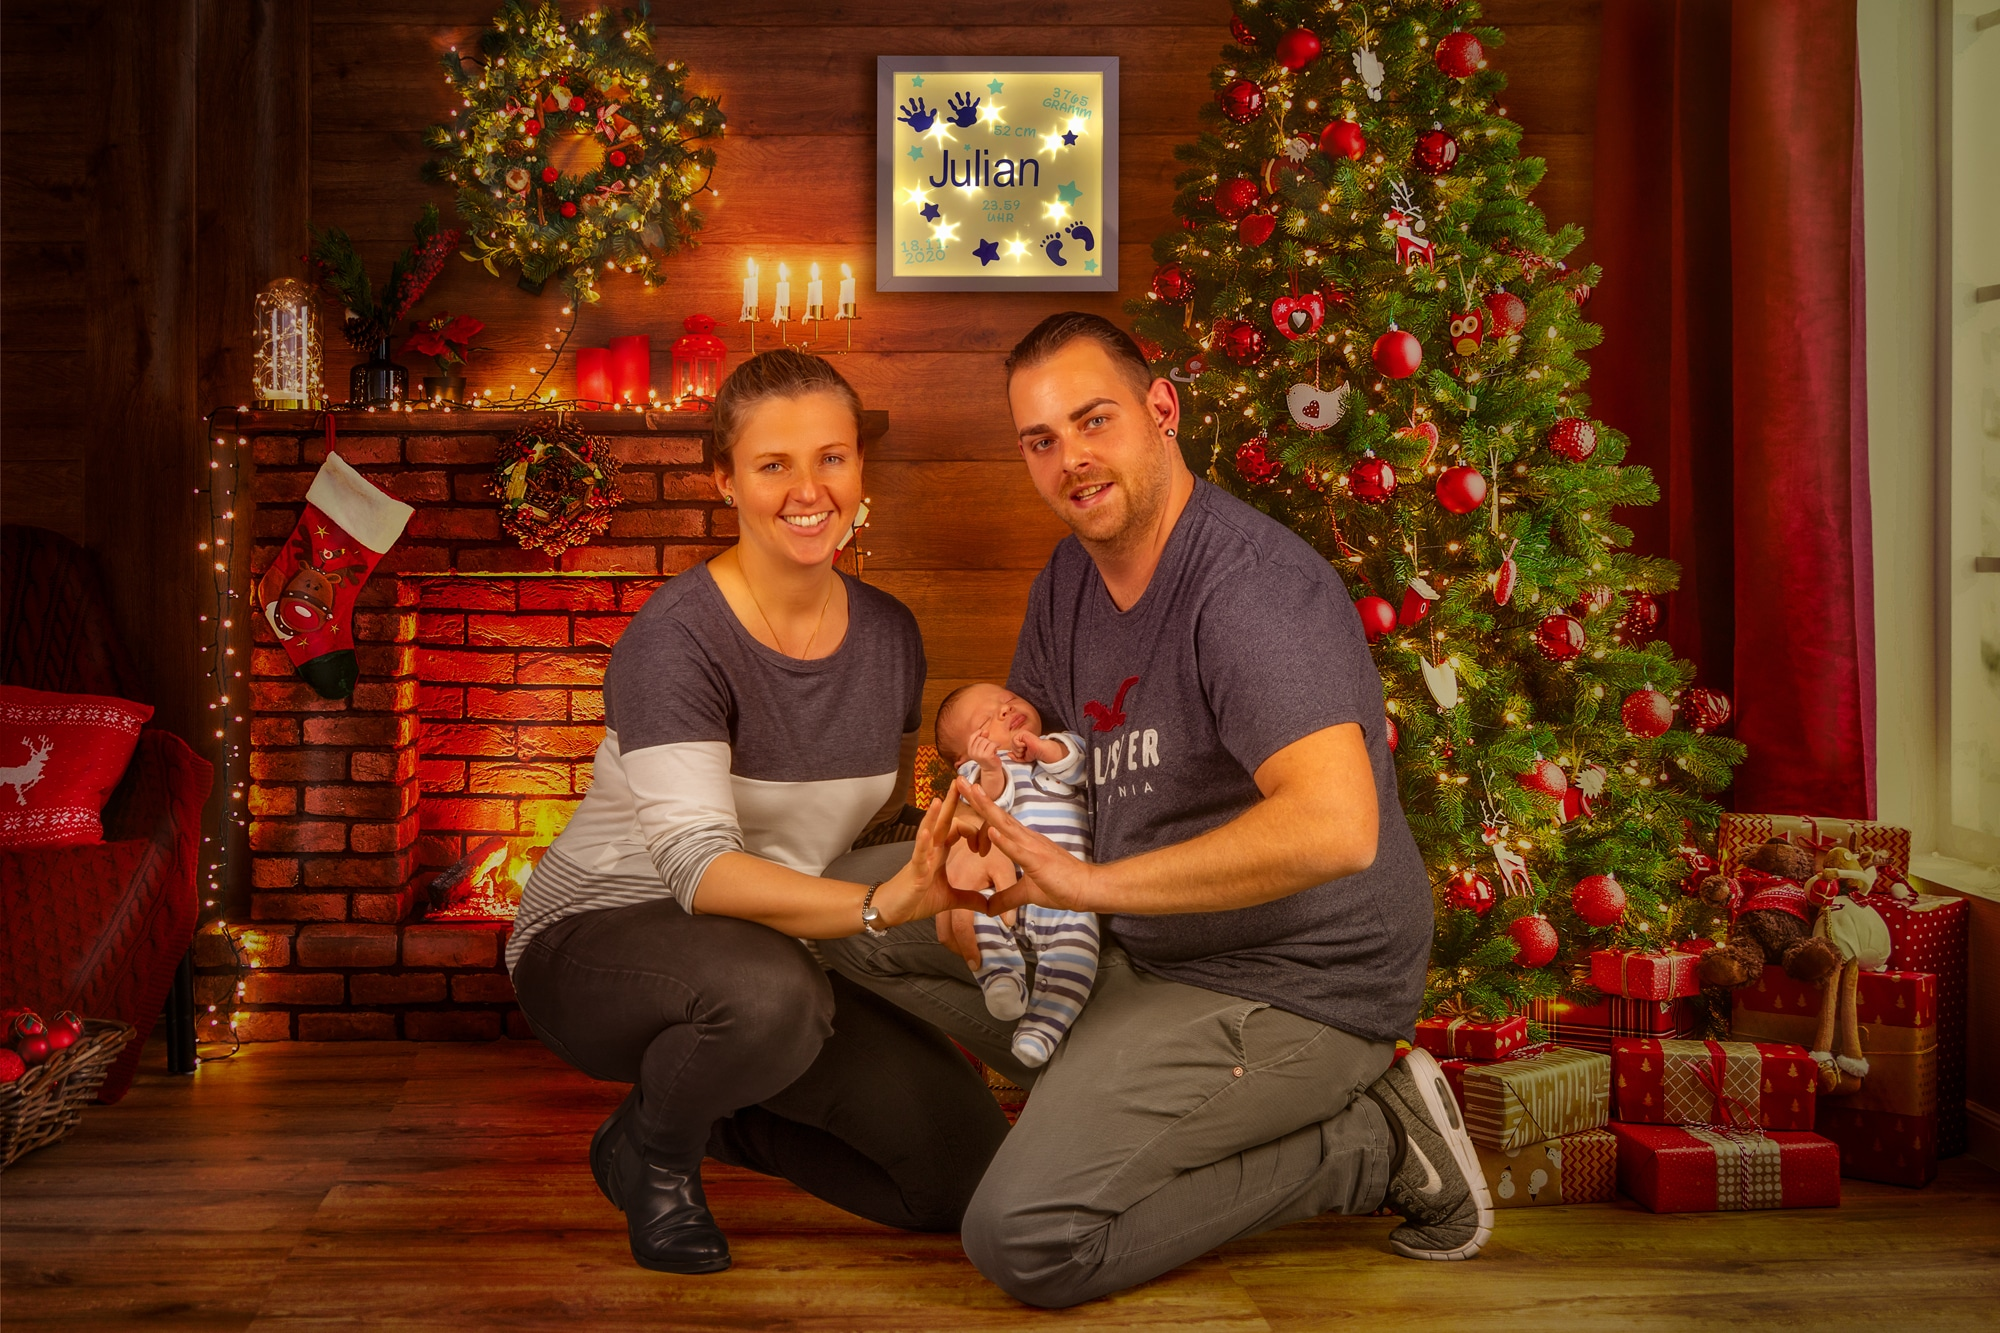 Familien Weihnachtsshooting